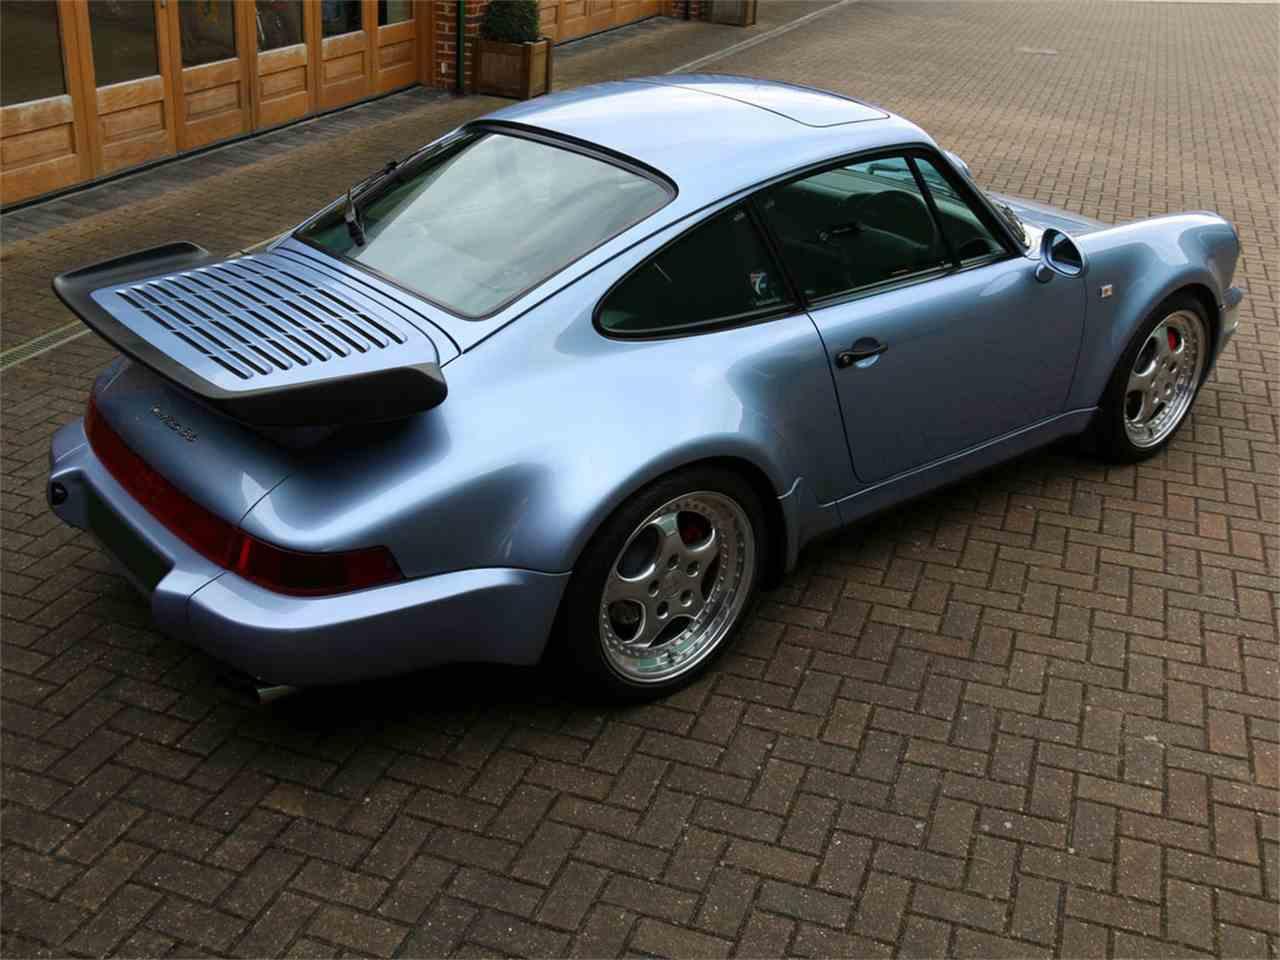 Large Picture of '94 Porsche 911 Type 964 Turbo 3.6 RHD located in Maldon, Essex  Auction Vehicle Offered by JD Classics LTD - KH4U